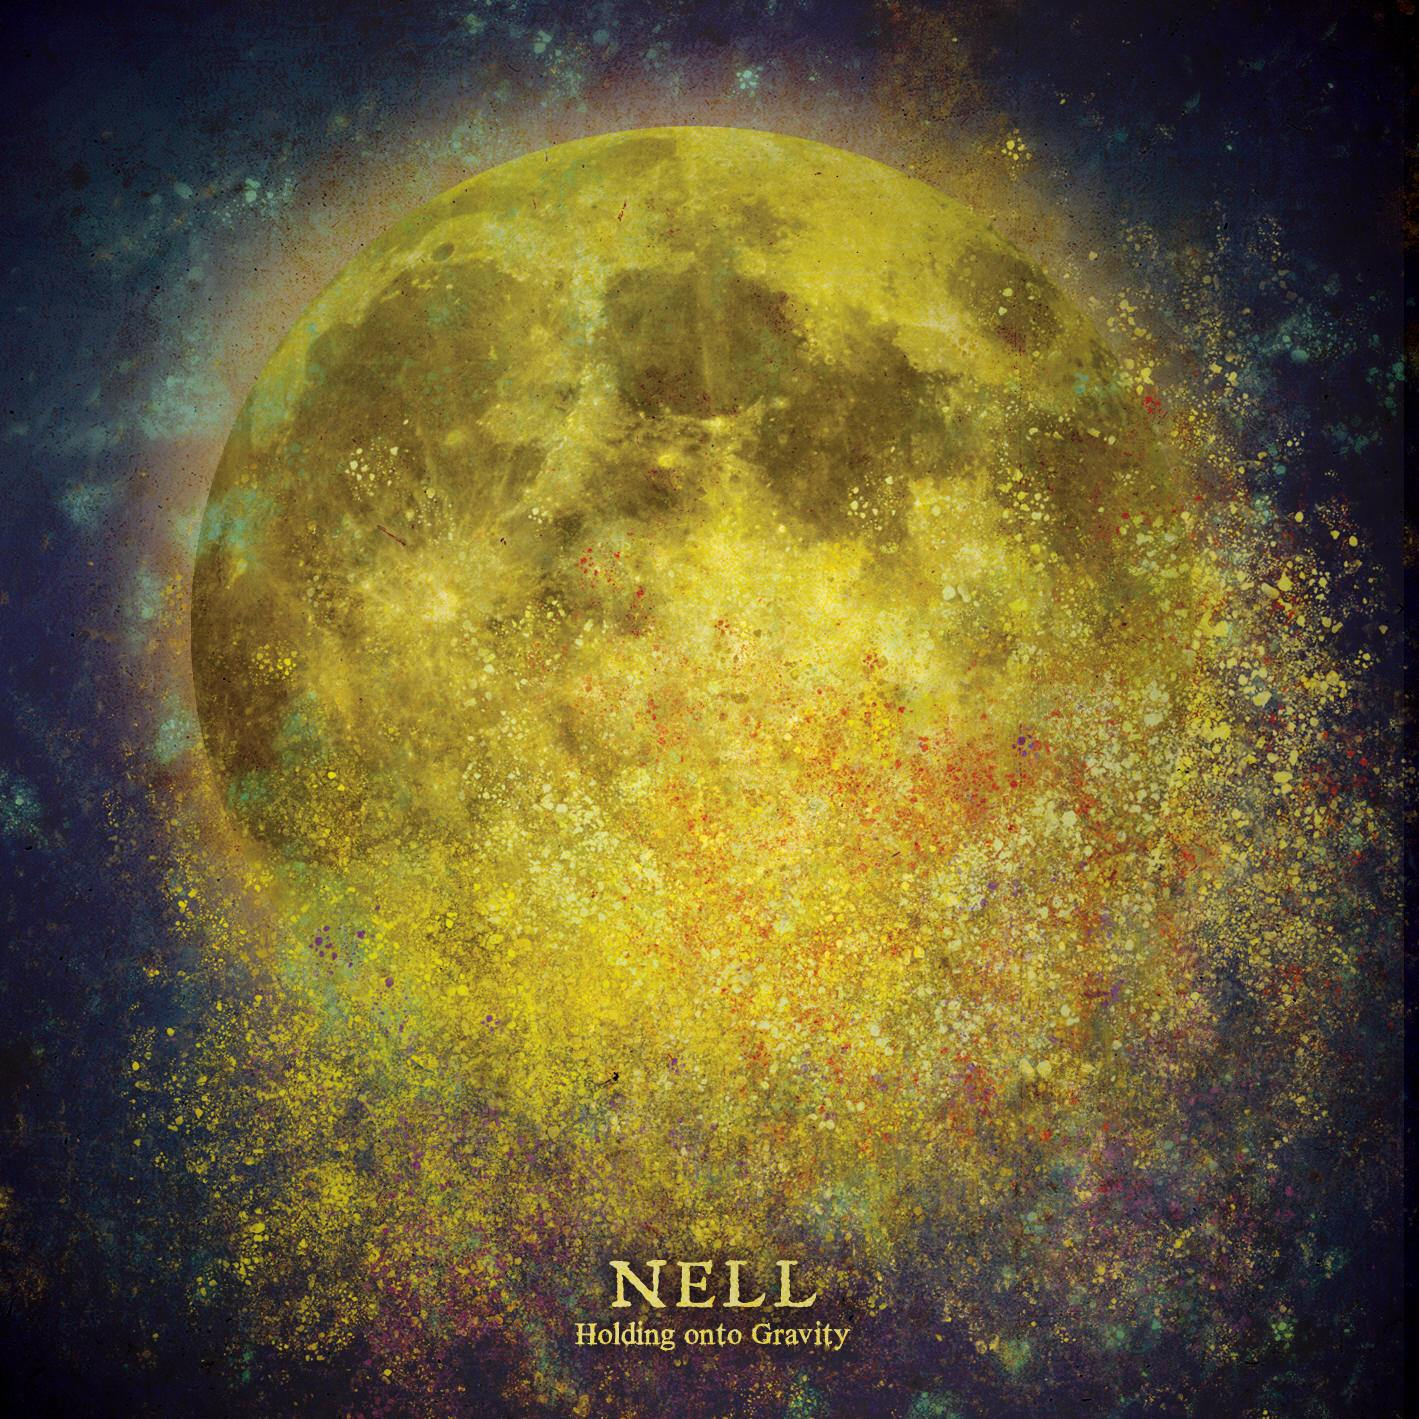 [Single] Nell - Holding onto Gravity